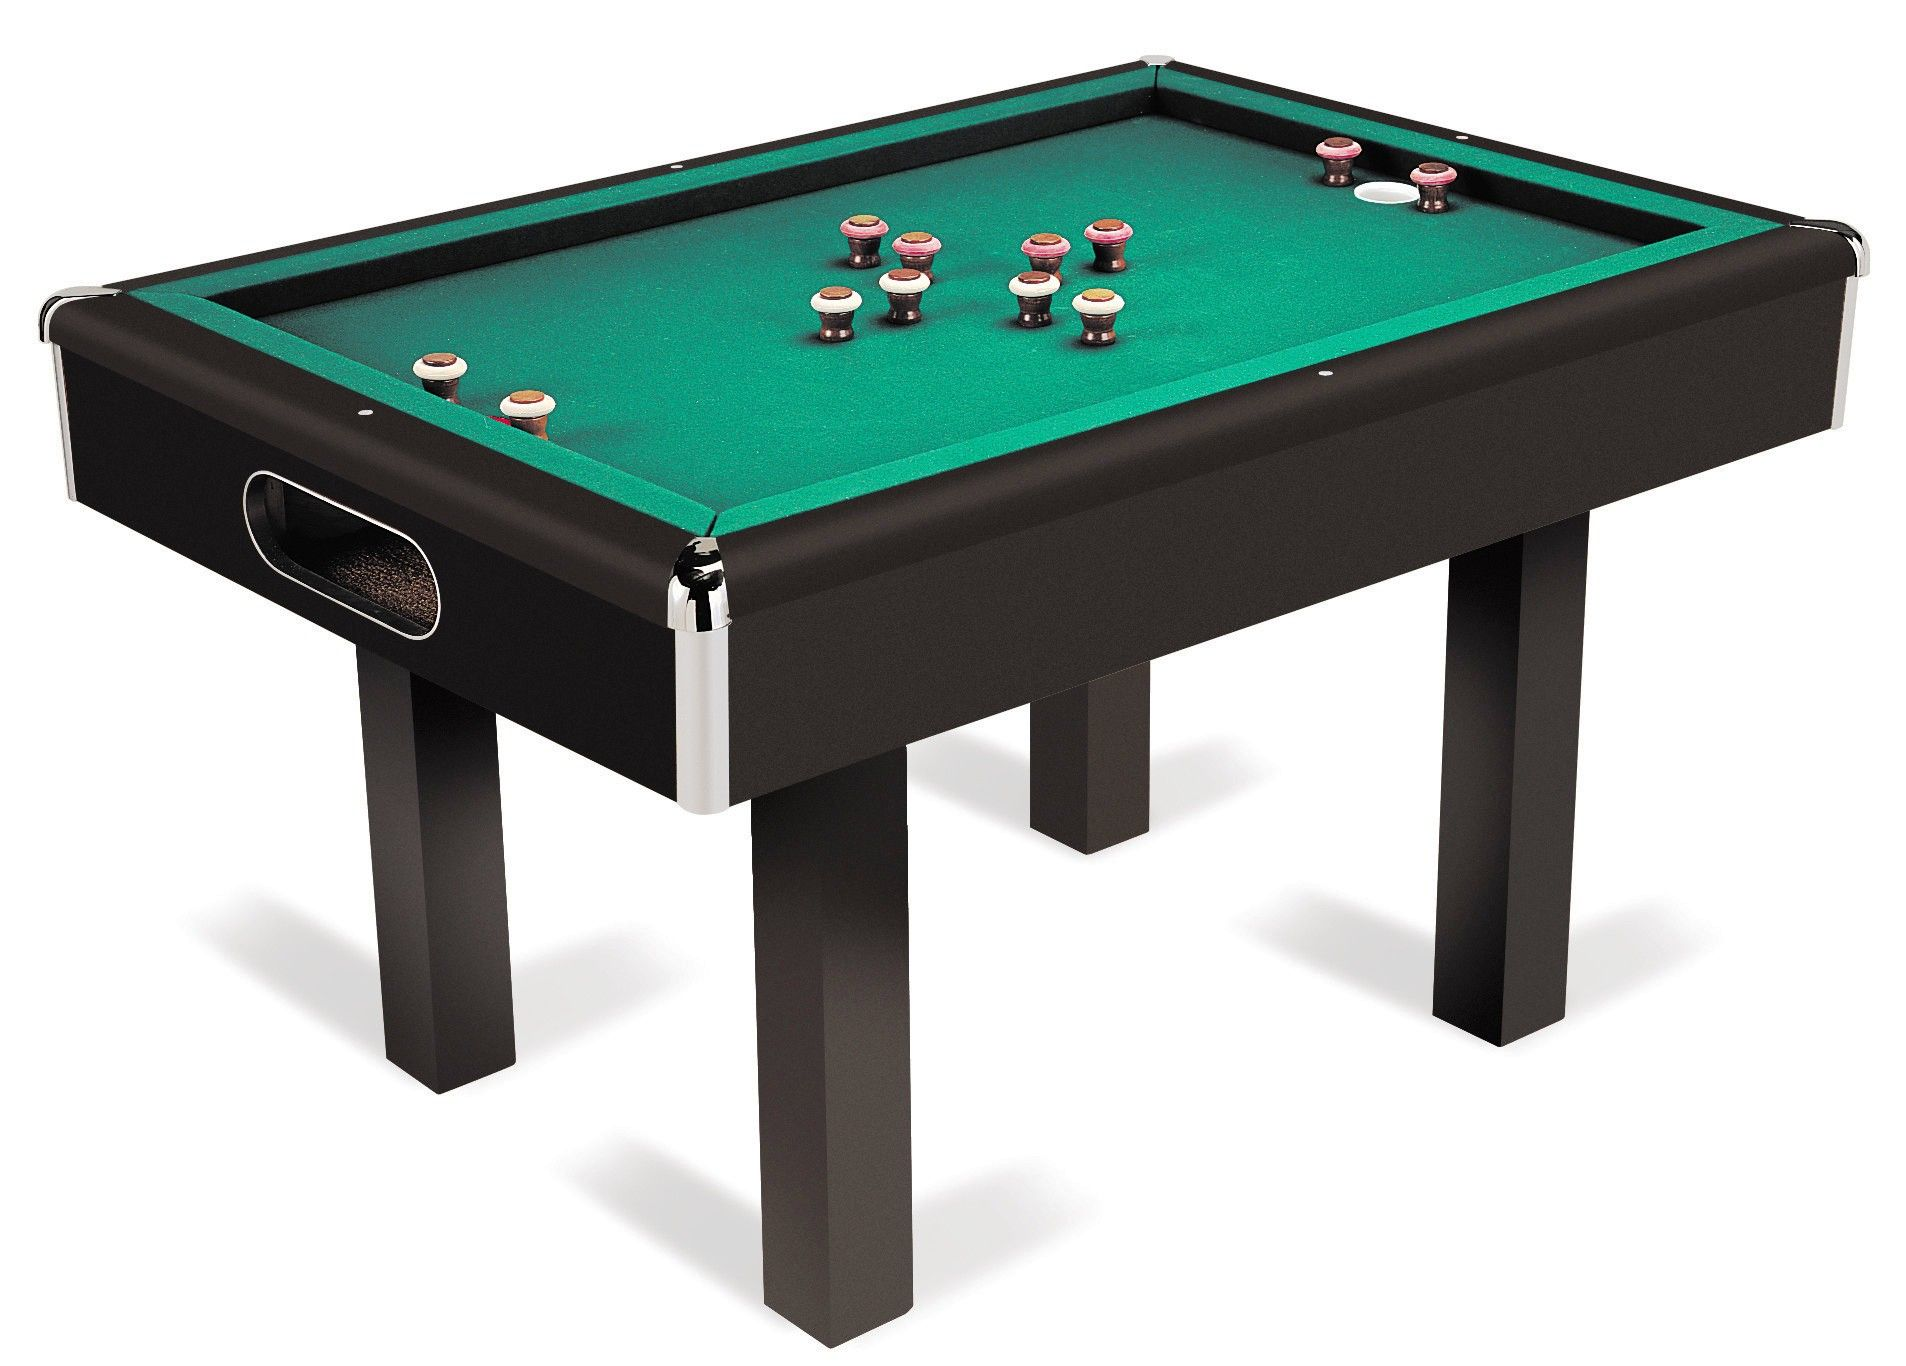 Bumper Pool Table Pared